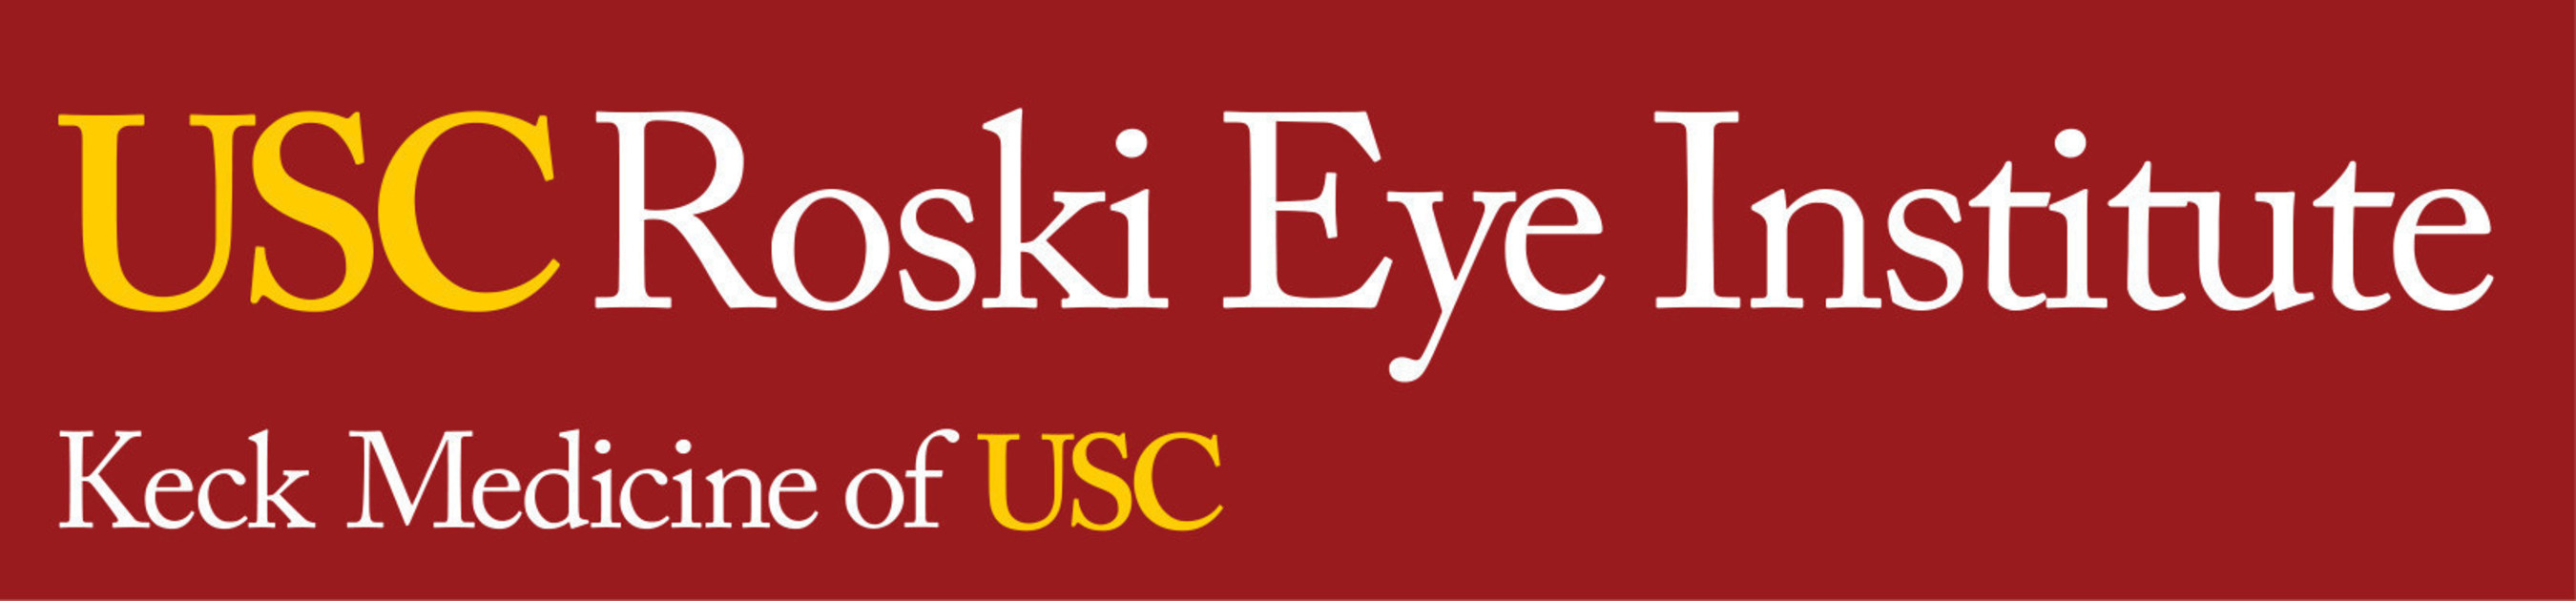 USC Roski Eye Institute experts featured in PBS documentary film, 'SIGHT: The Story of Vision,' debuting on World Sight Day